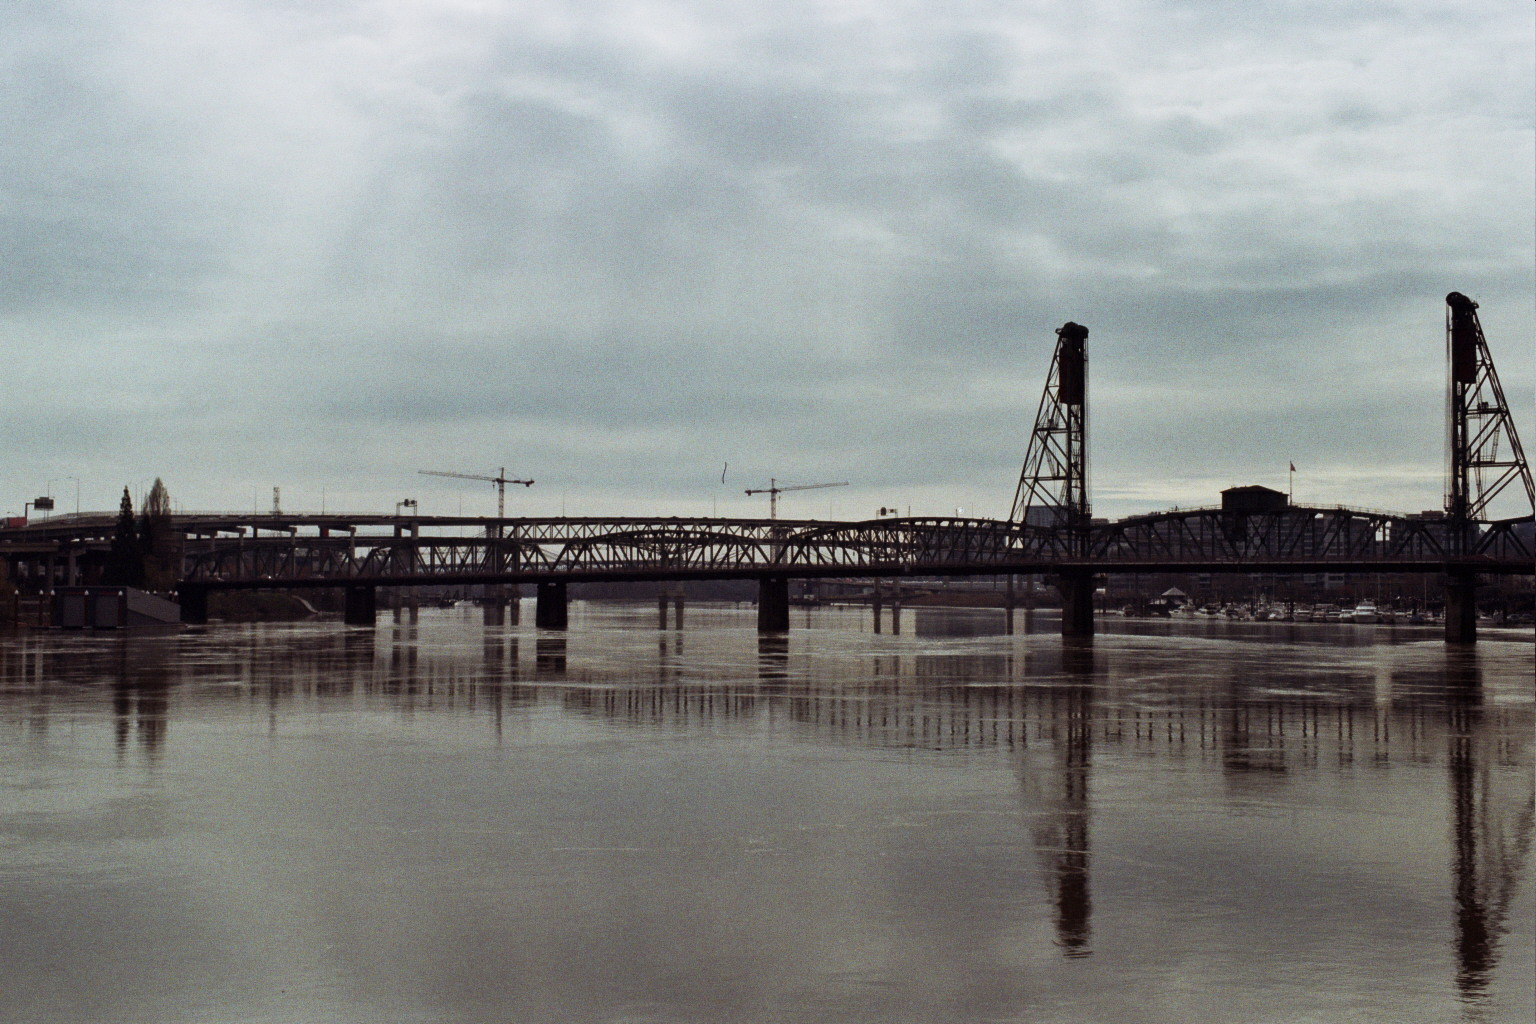 view of one of the many bridges over the Wilamette River